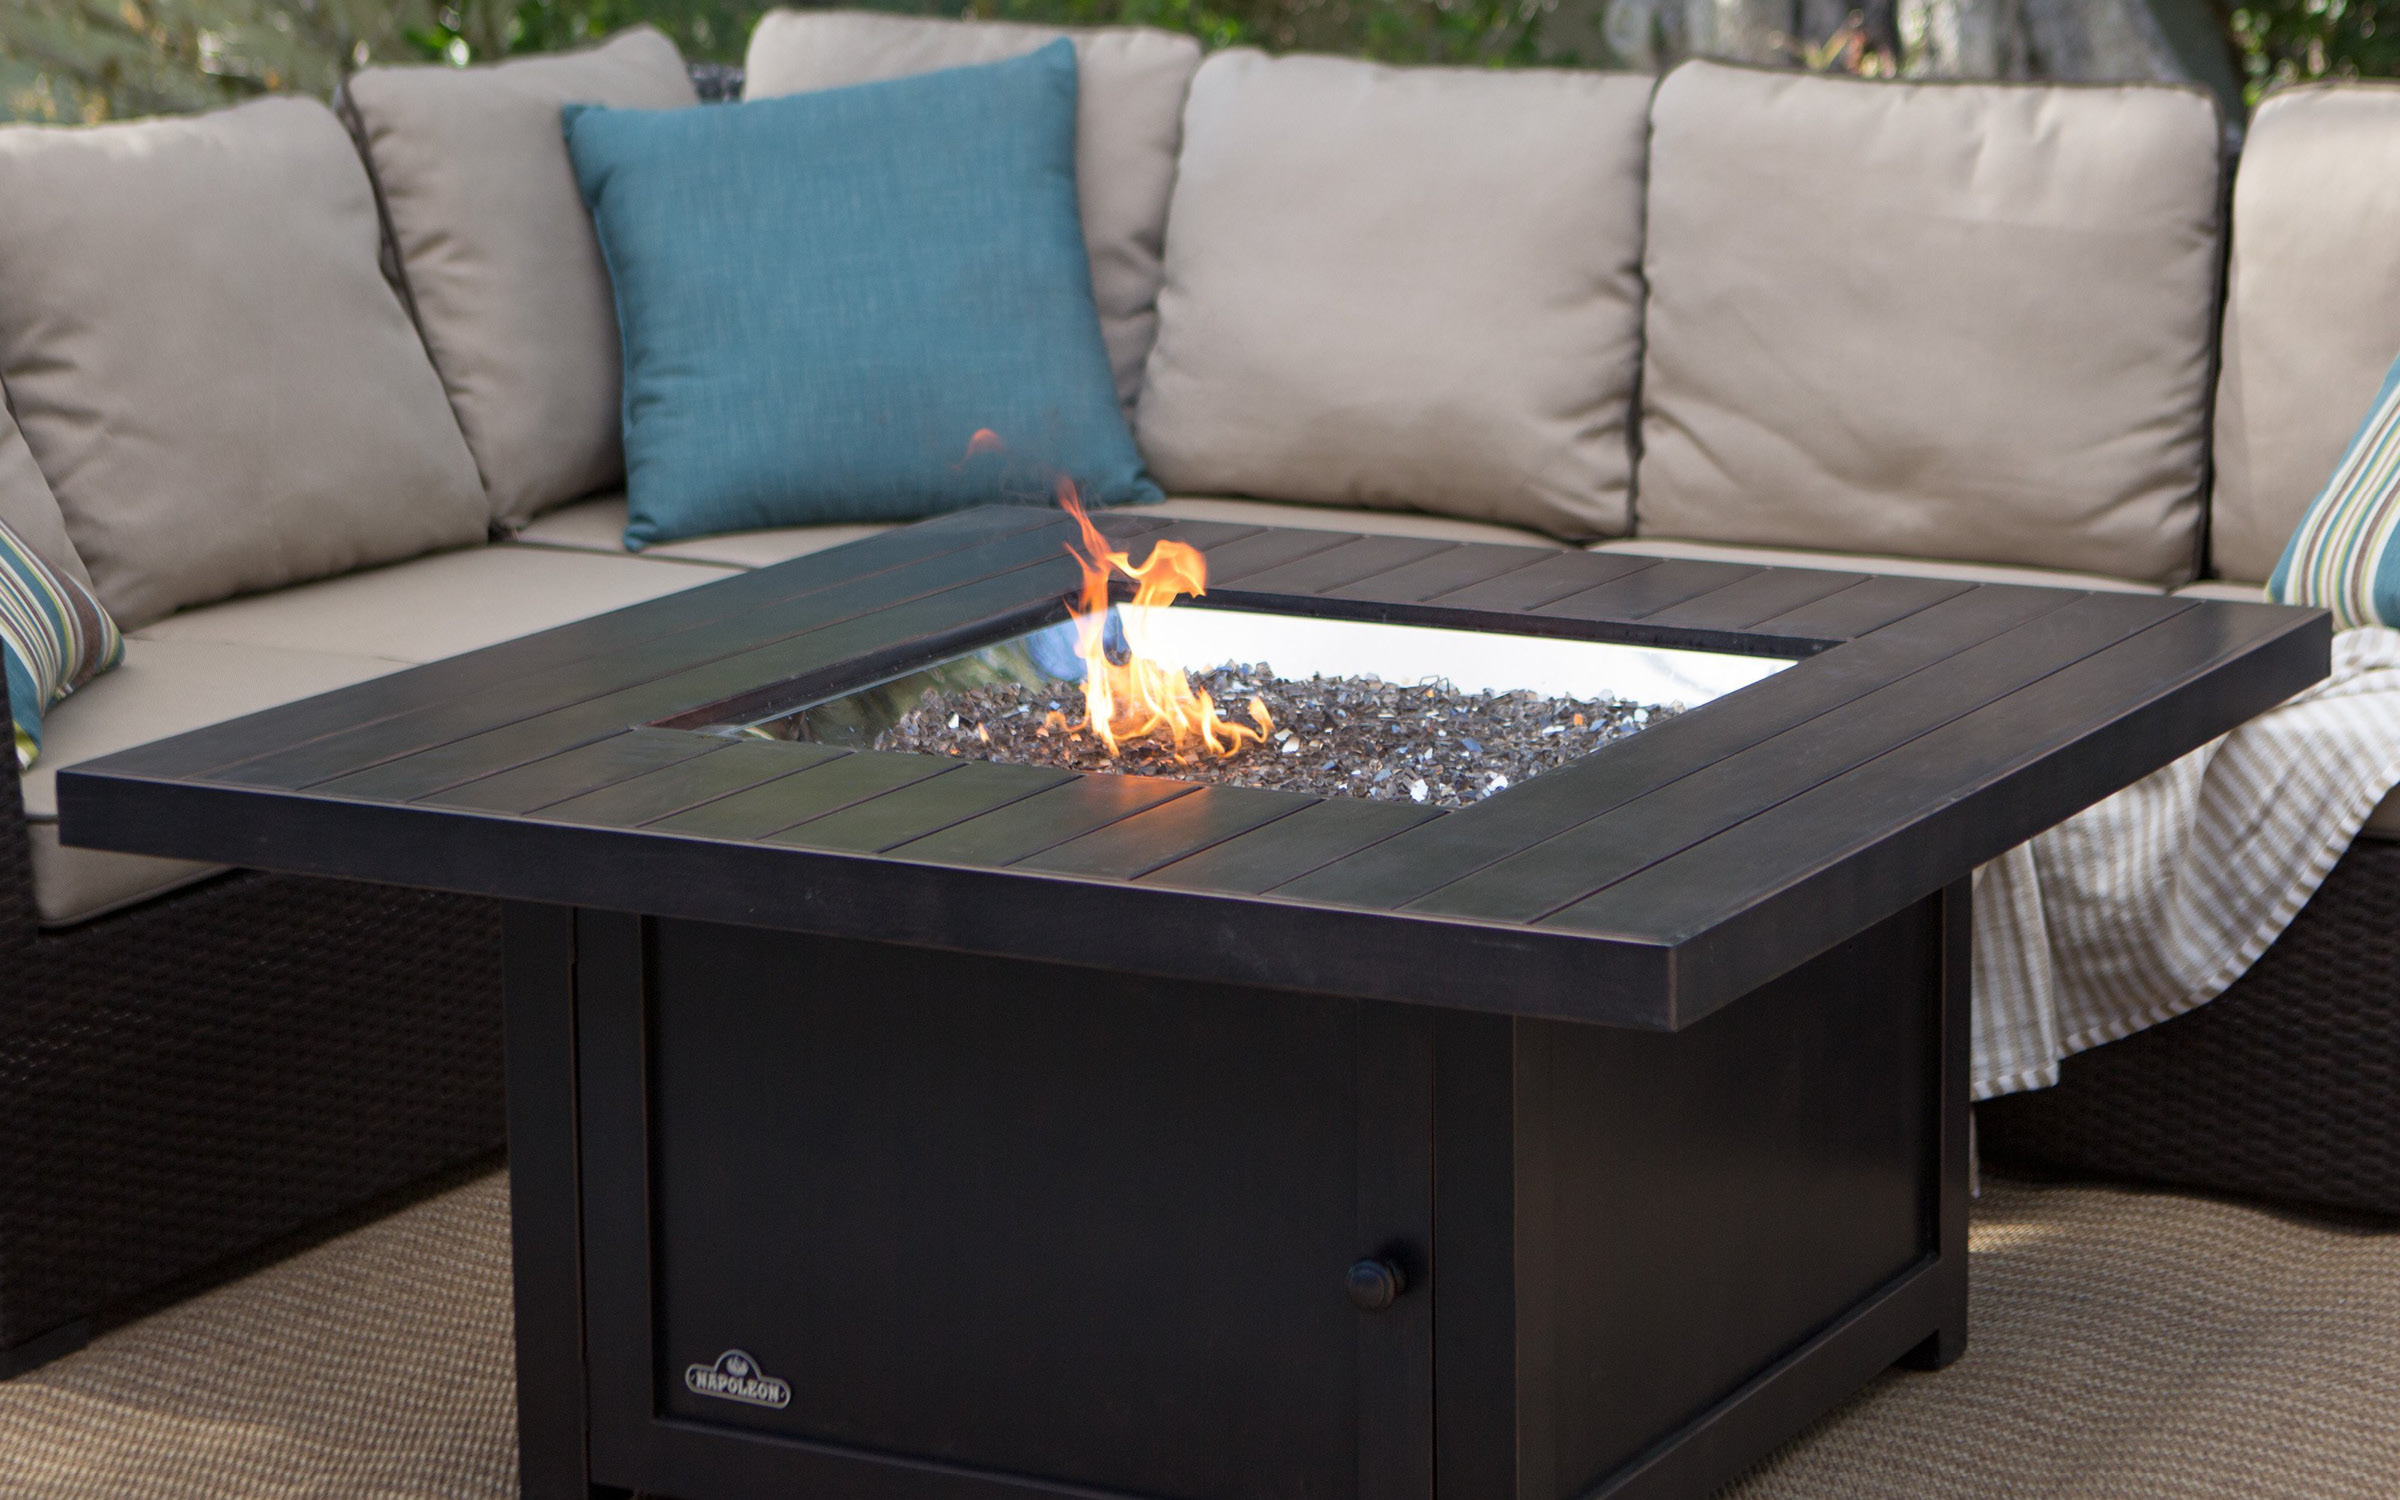 Outdoor Square Fire Pit Acrylic | iFurnish, Frisco, CO